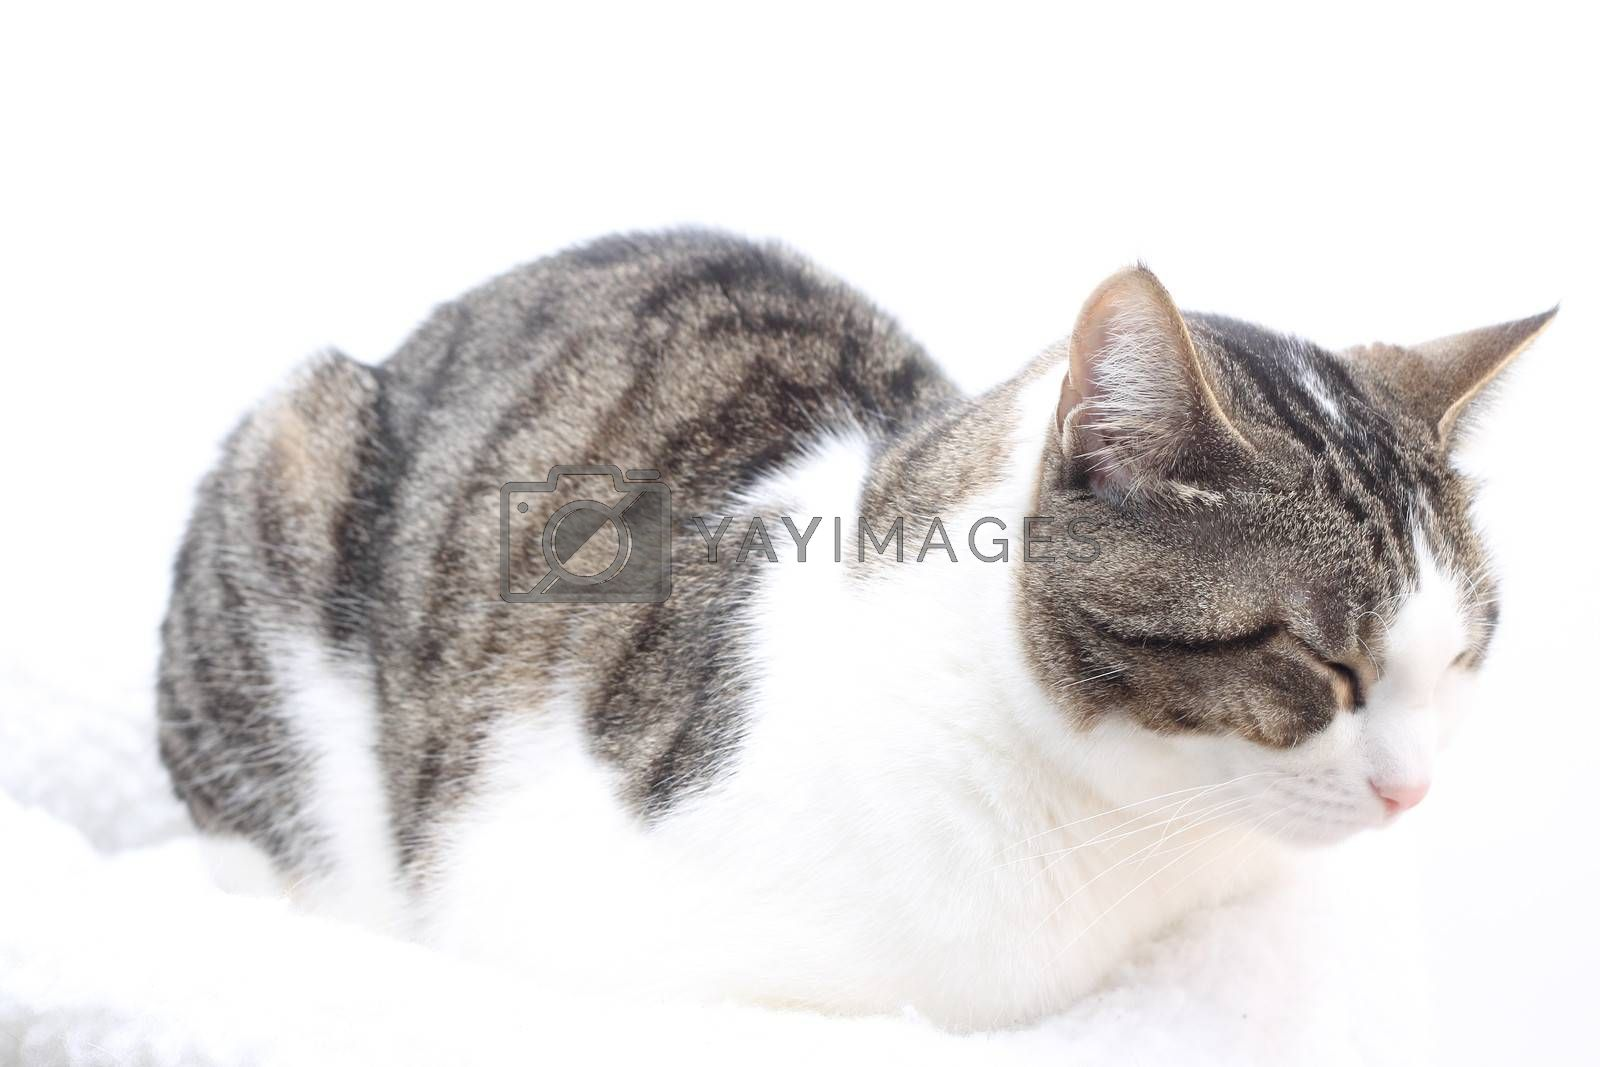 Tabby cat on white background. Eyes closed by Rossella